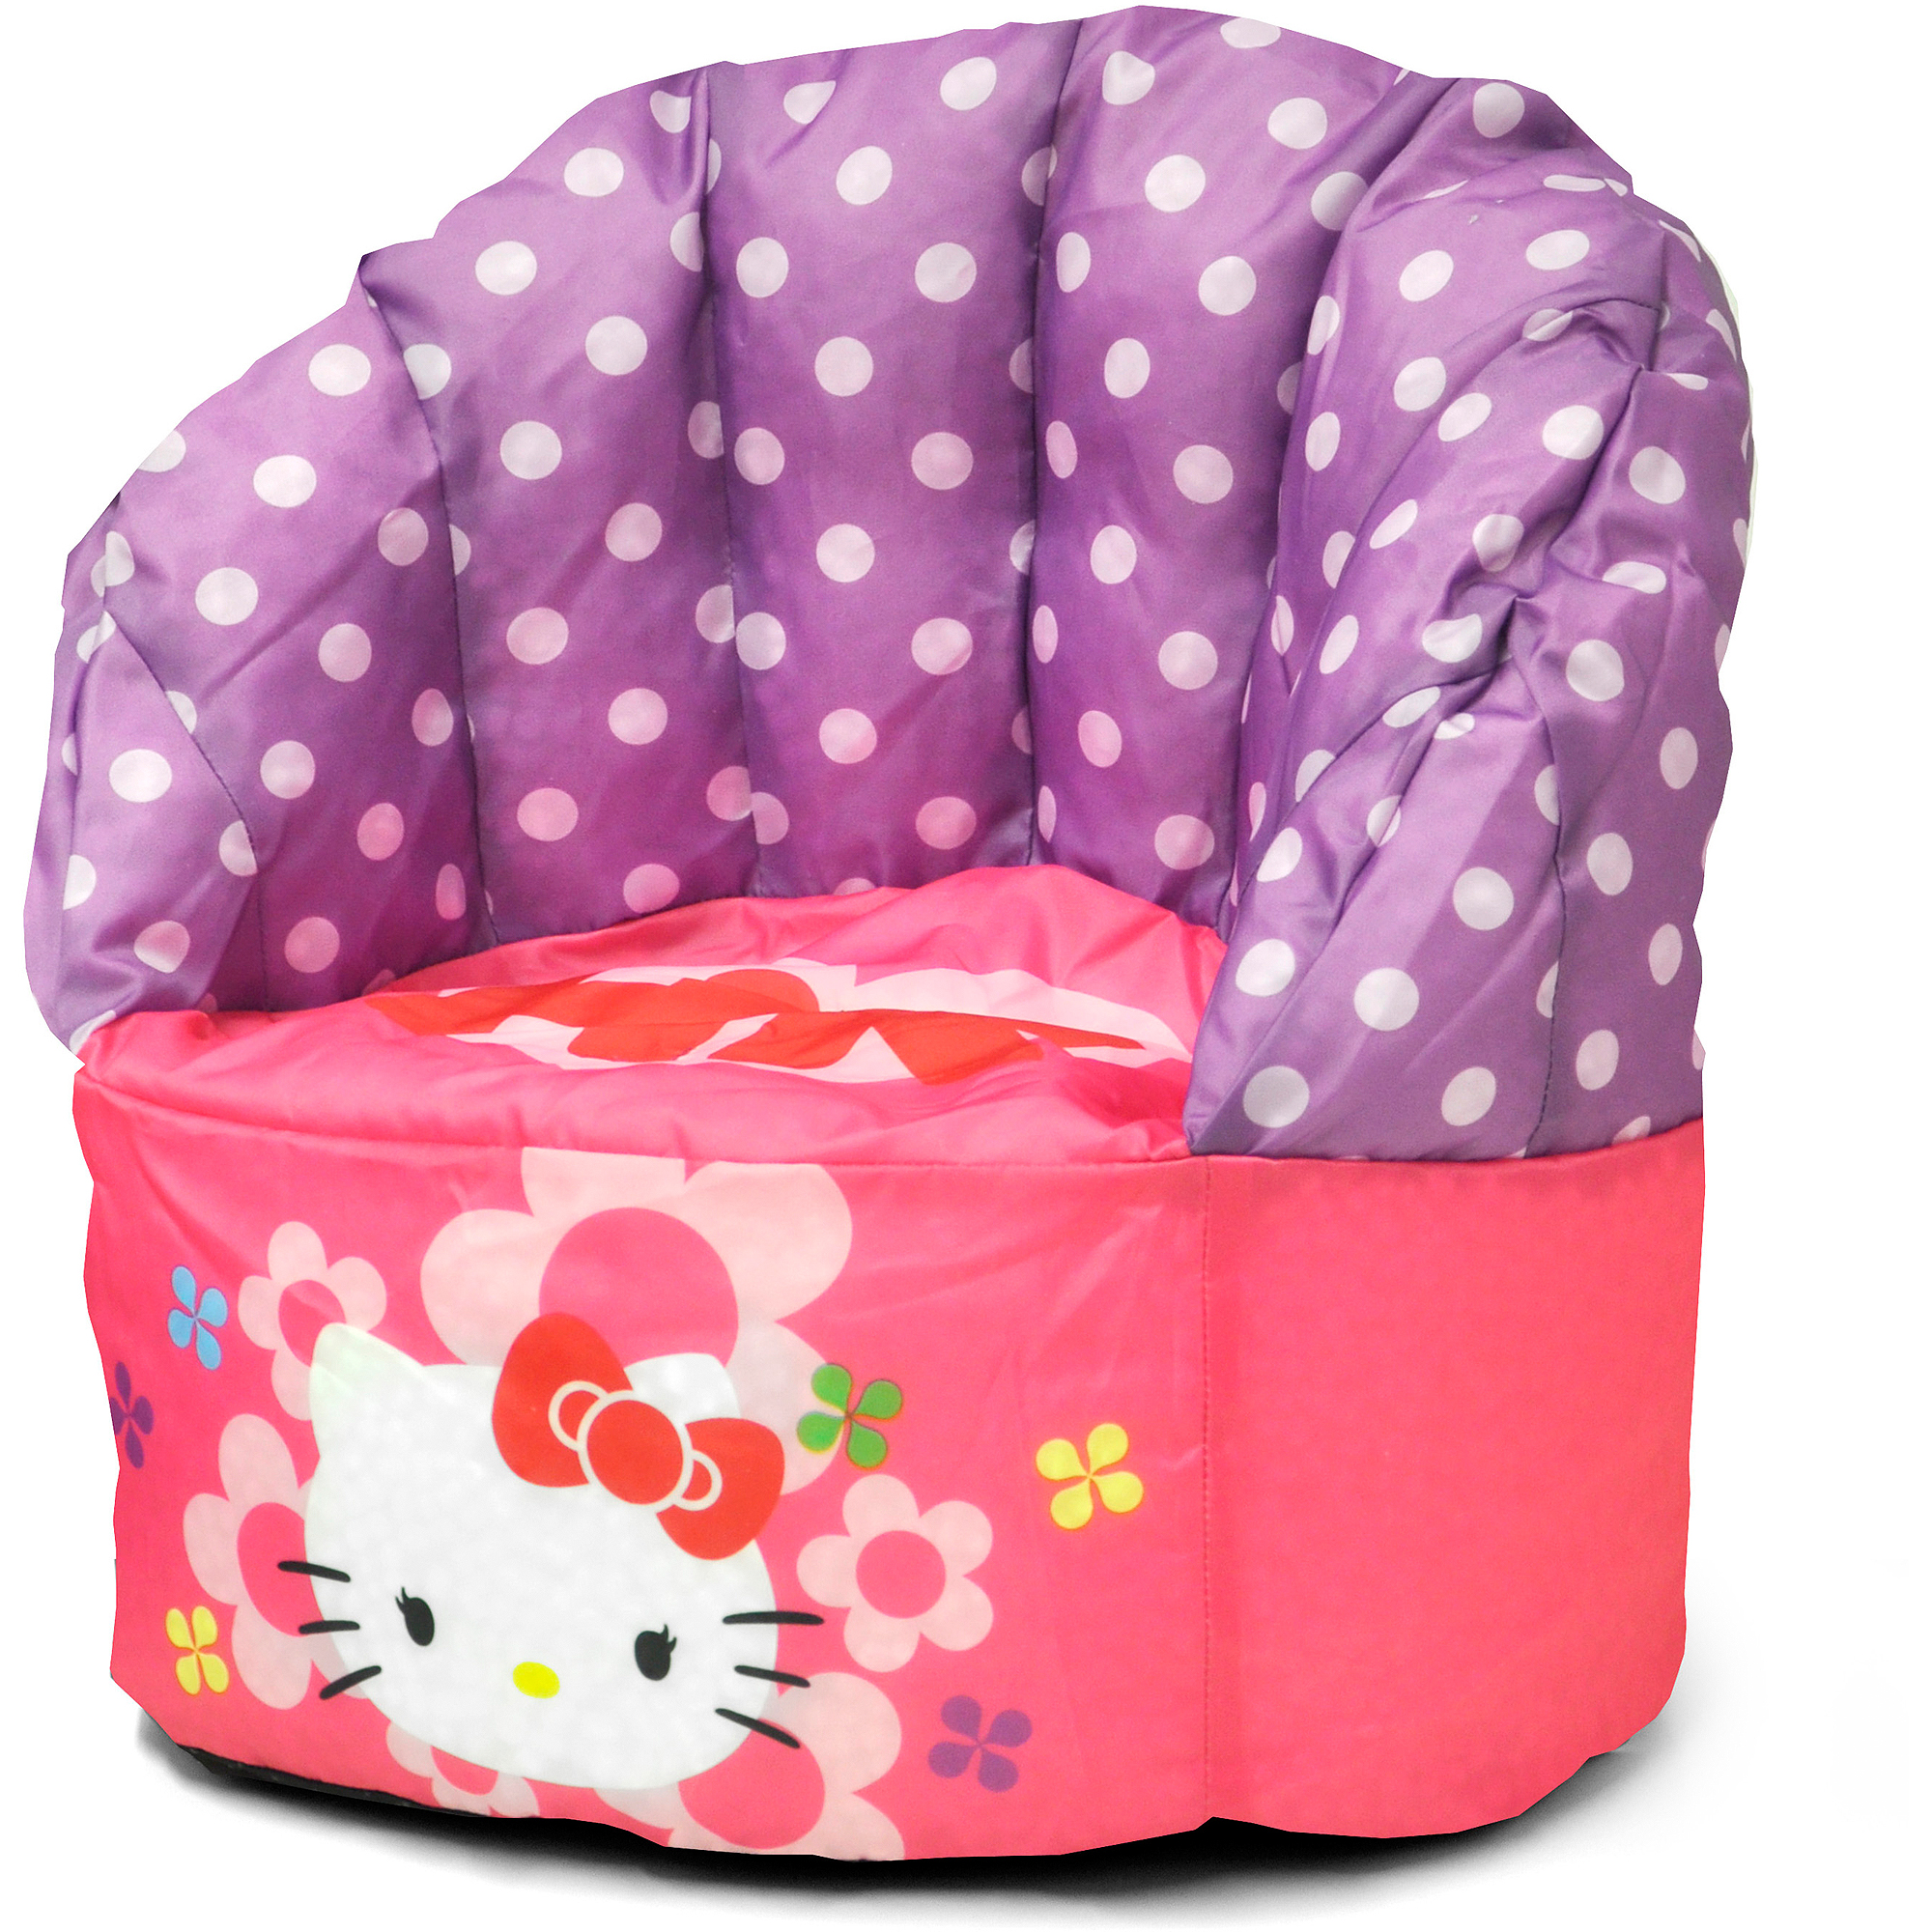 Sanrio Hello Kitty Bean Bag Chair